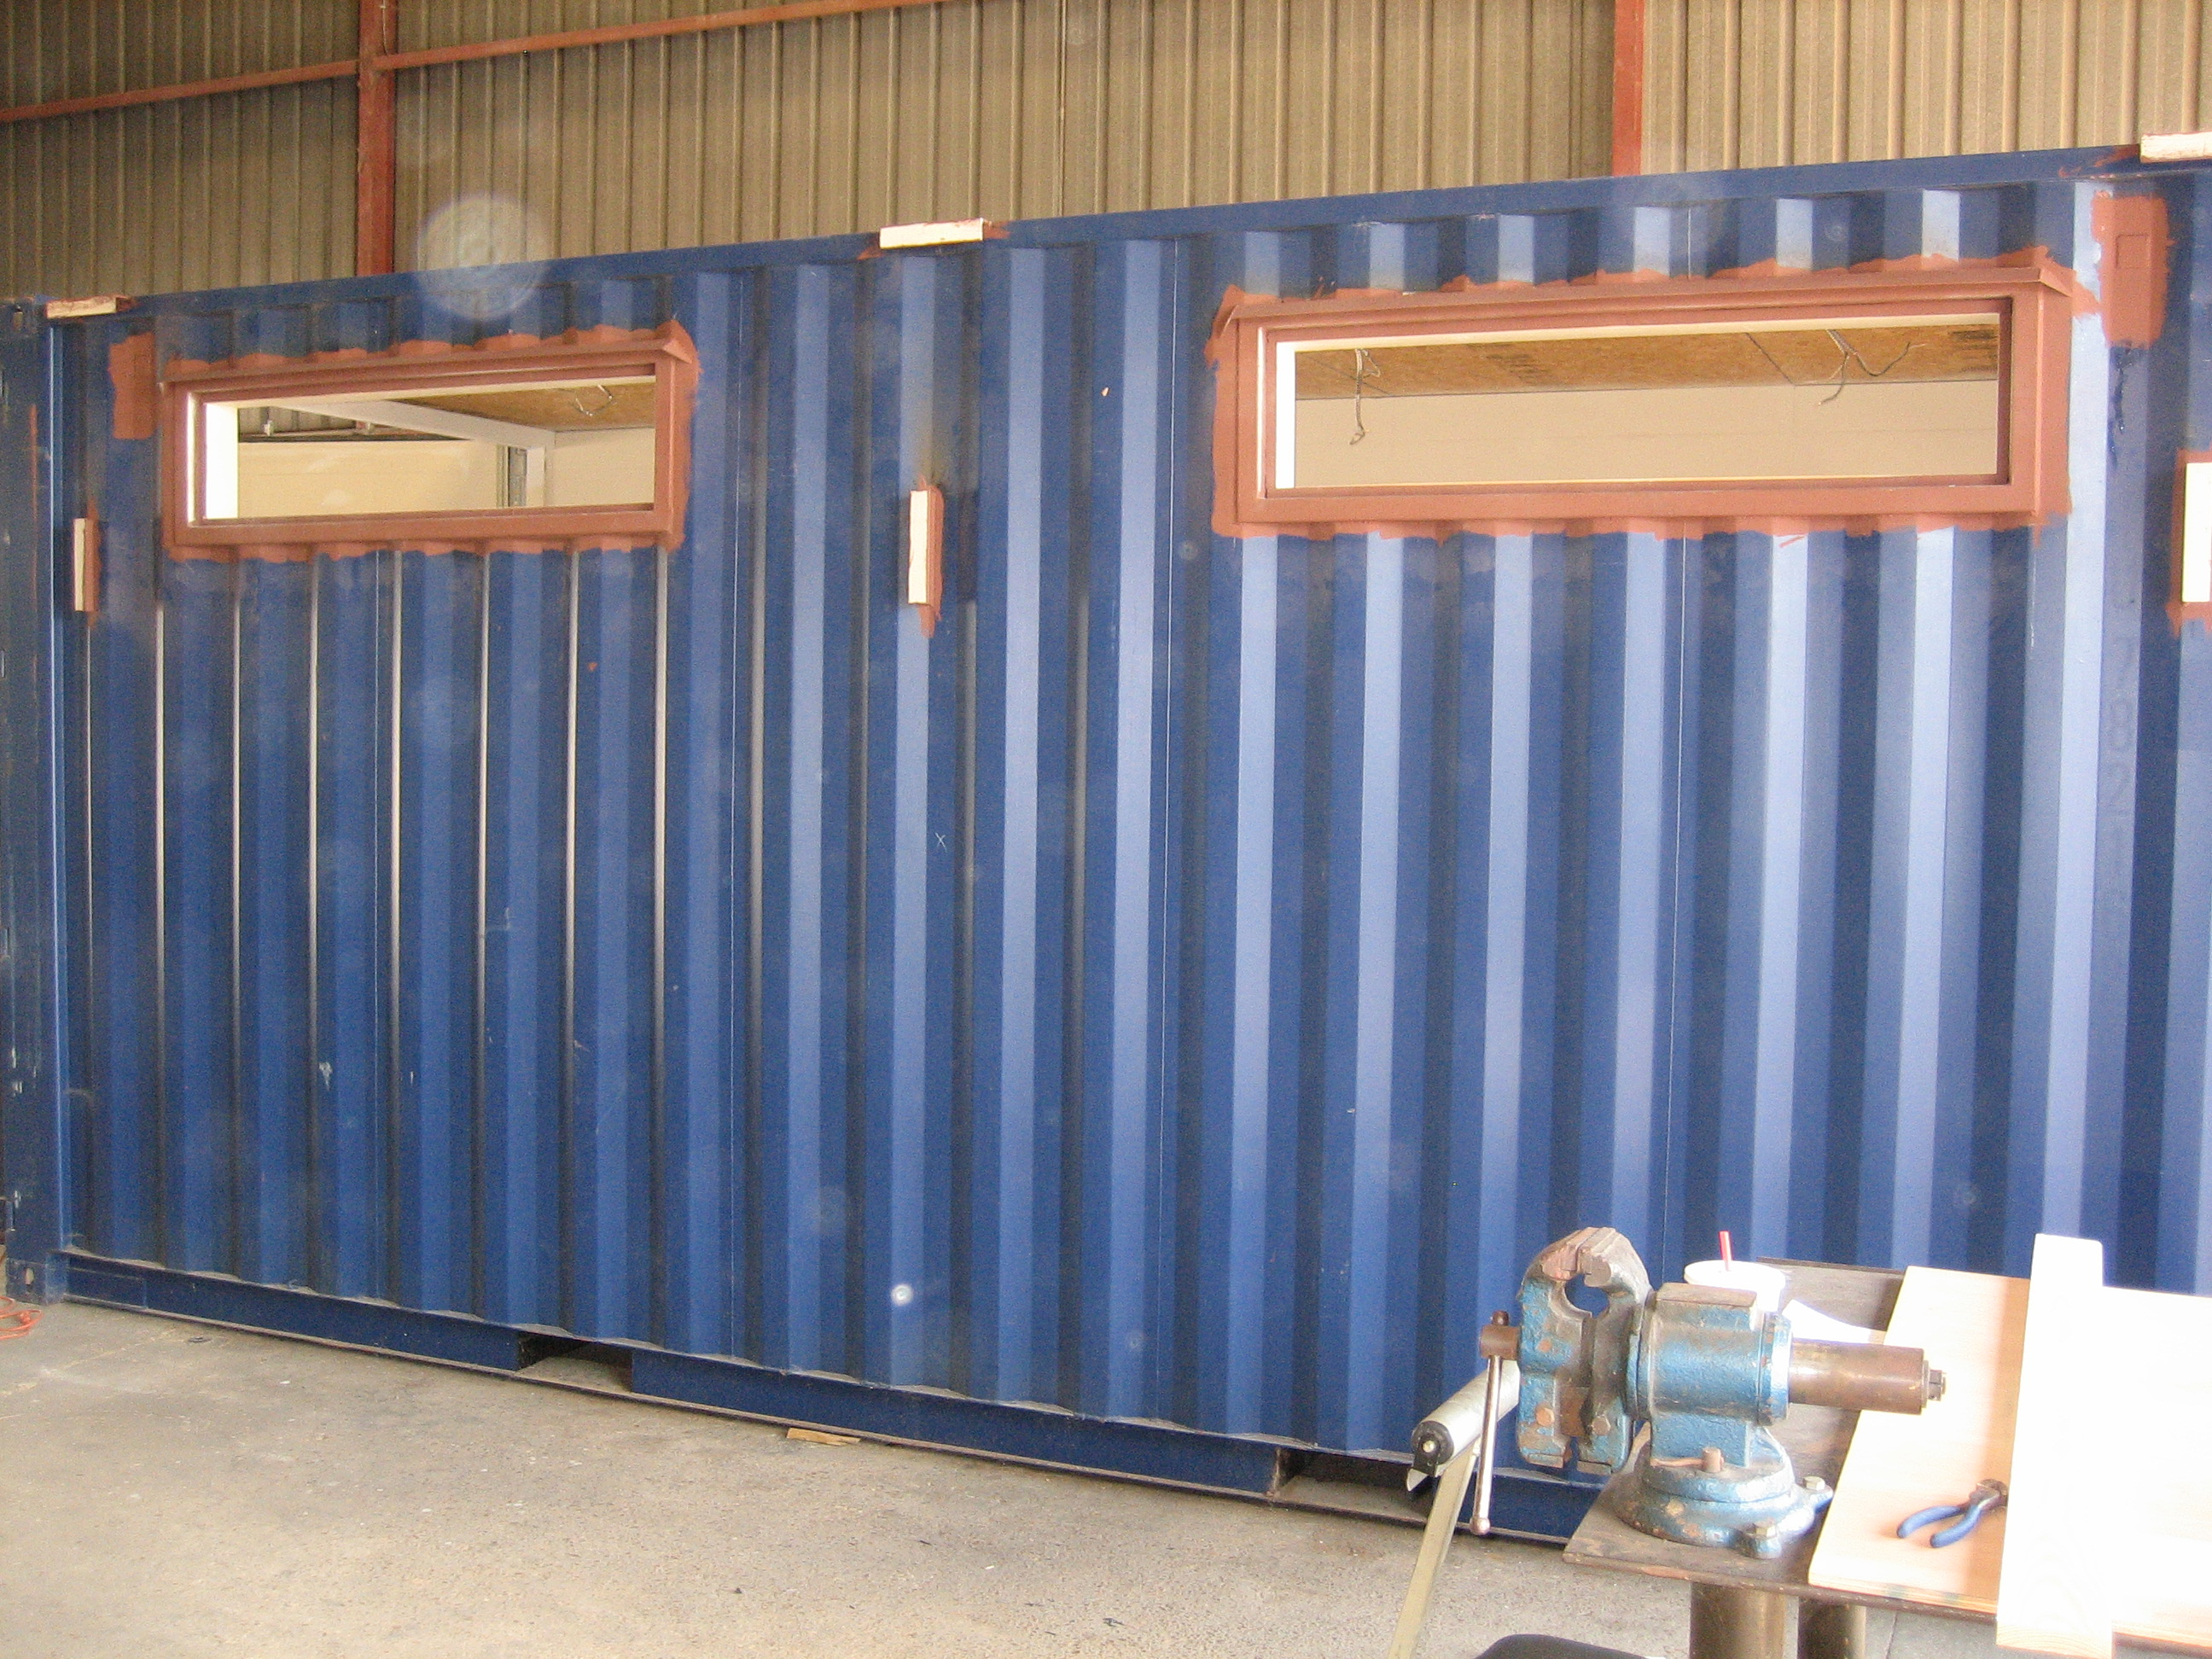 Container with Bulkhead